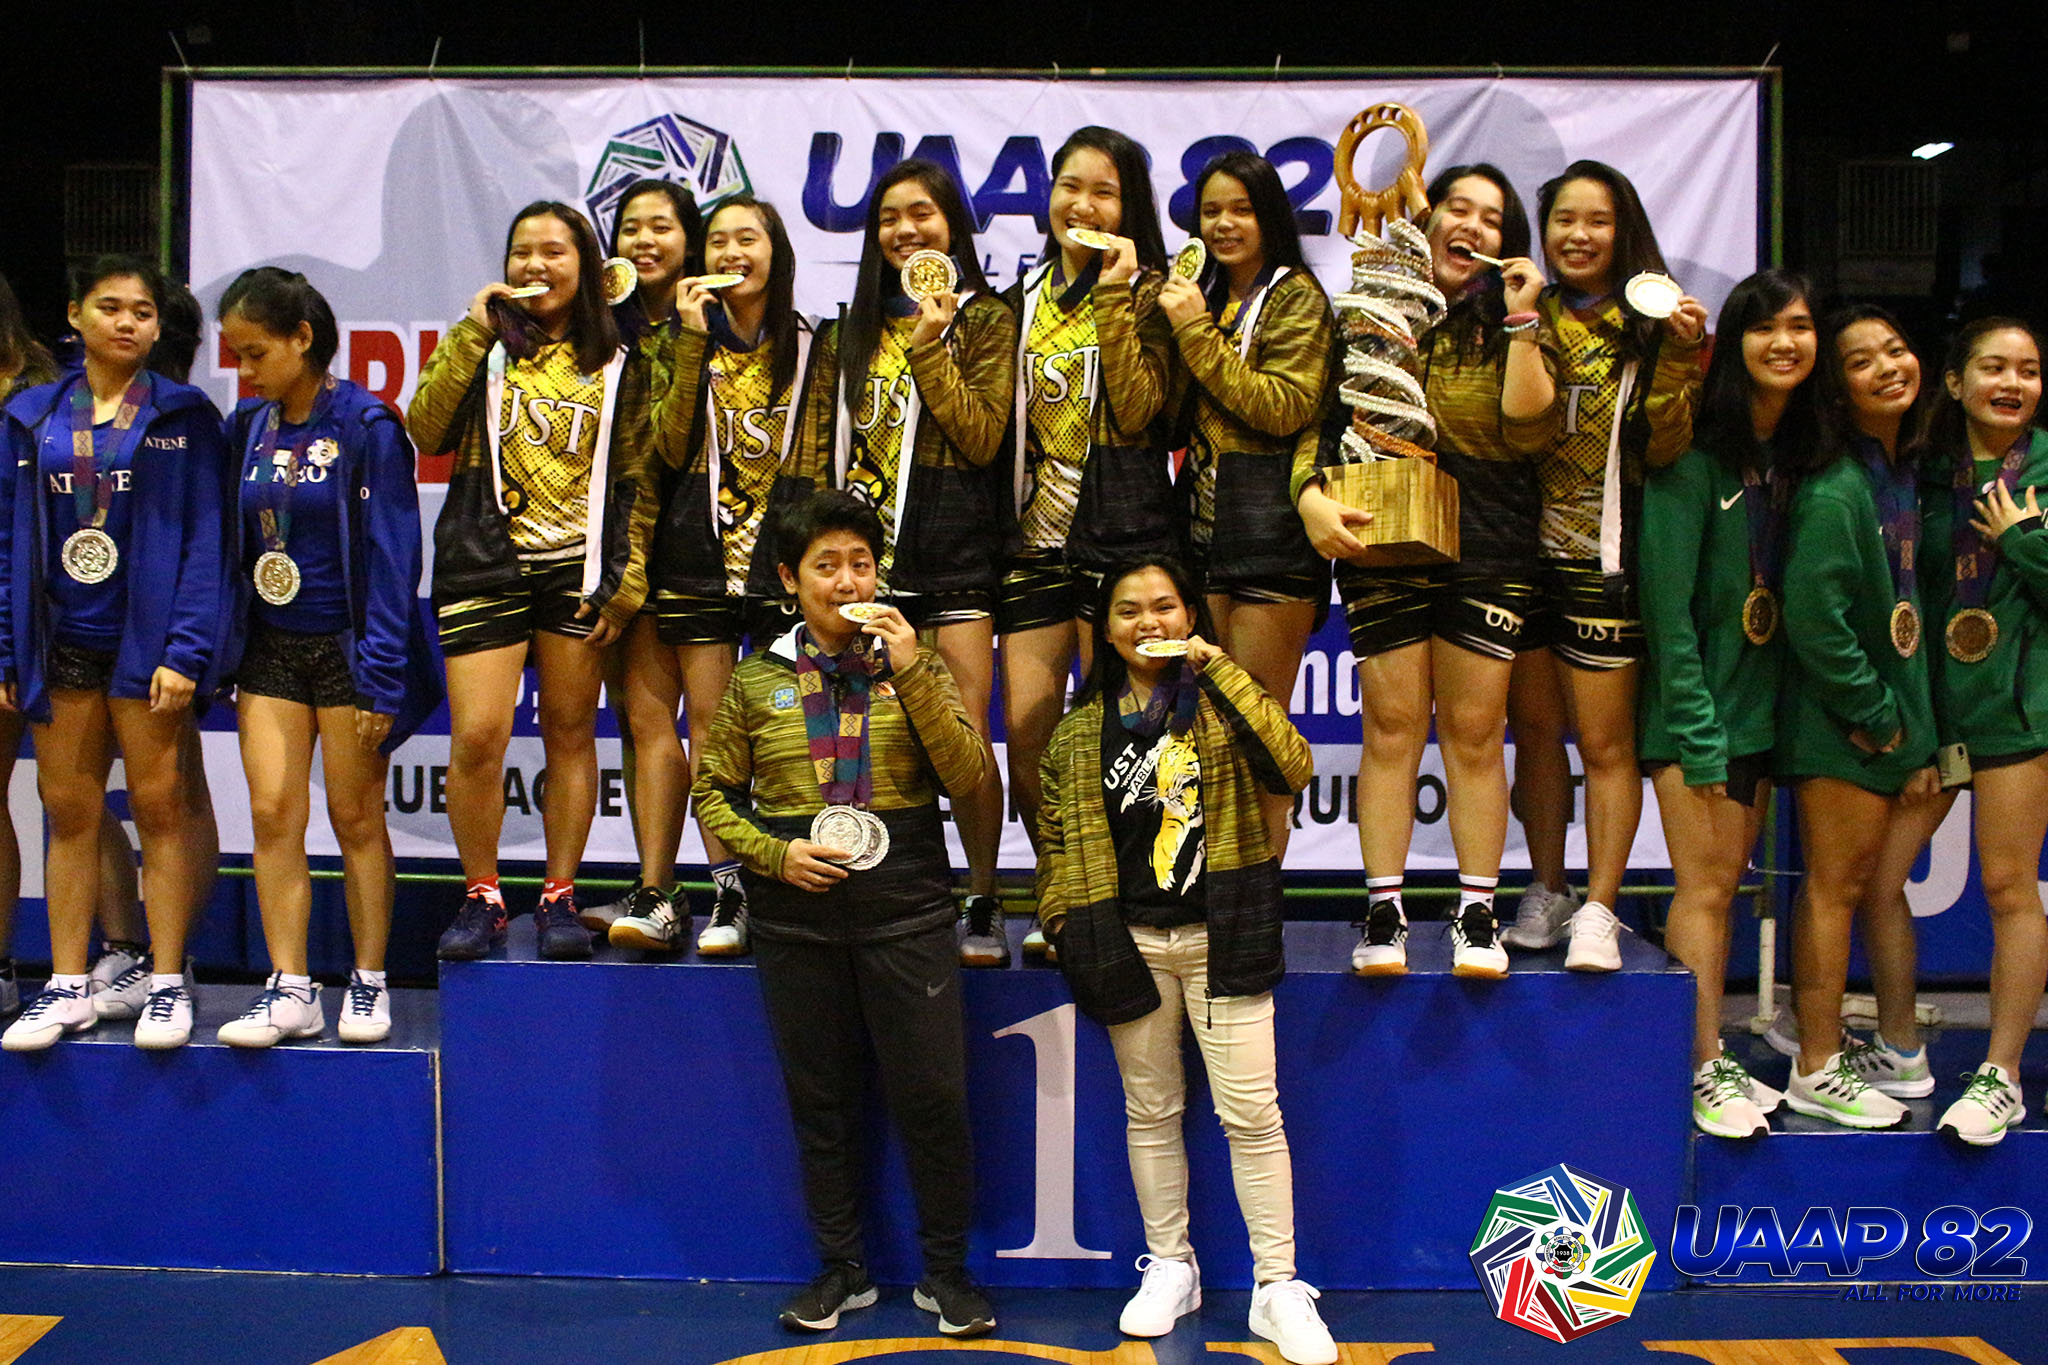 Tiebreaker Times UST claws gallant Ateneo, roars to 13th UAAP Women's Table Tennis tiara ADMU News Table Tennis UAAP UST  UST Women's Table Tennis UAAP Season 82 Women's Table Tennis UAAP Season 82 Sherlyn Gabisay Shaeena Ronquillo Lorinda Wadjad Leigh Villanueva Kathleene Bulaquena Kaela Aguilar Emery Digamon Danica Alburo Ateneo Women's Table Tennis Ann Borbon